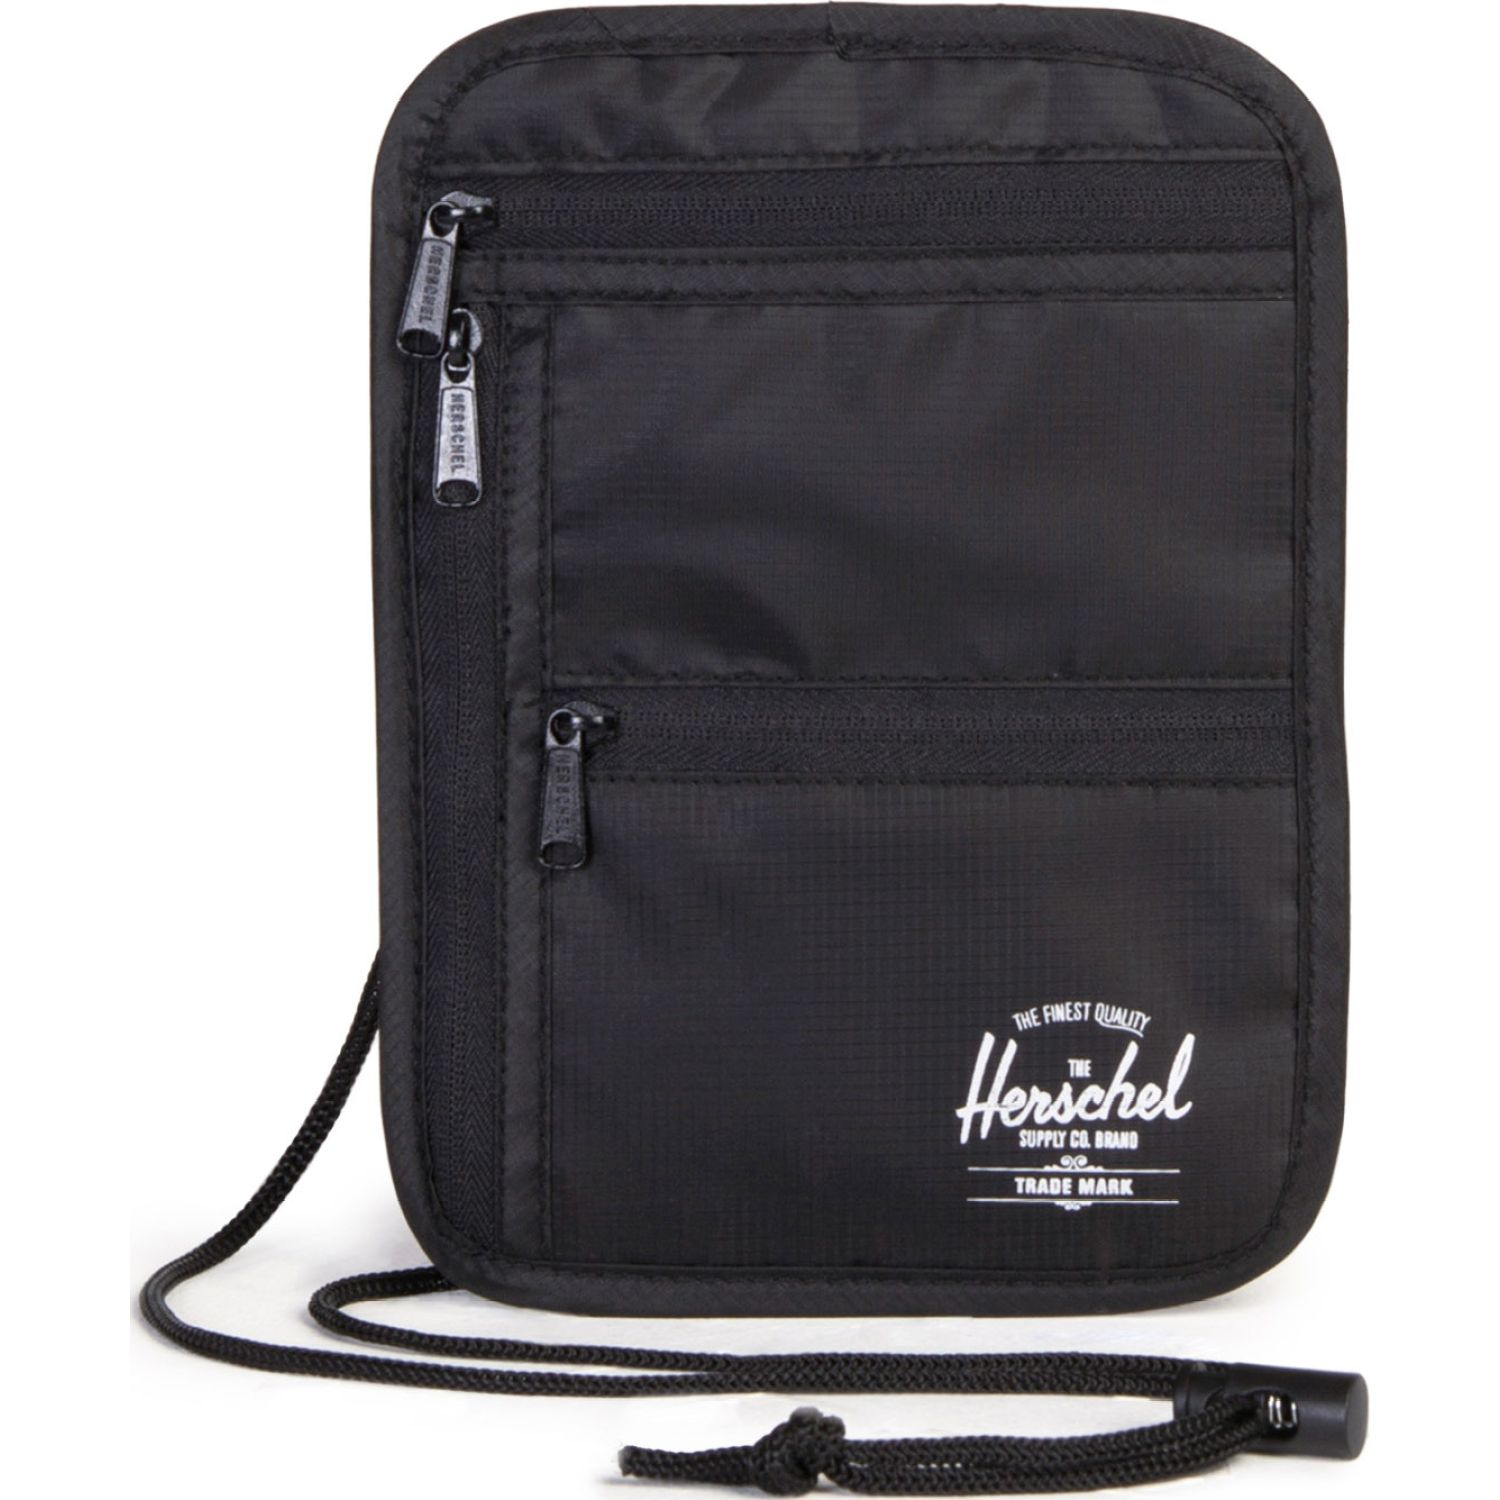 HERSCHEL Money Pouch Negro Billeteras